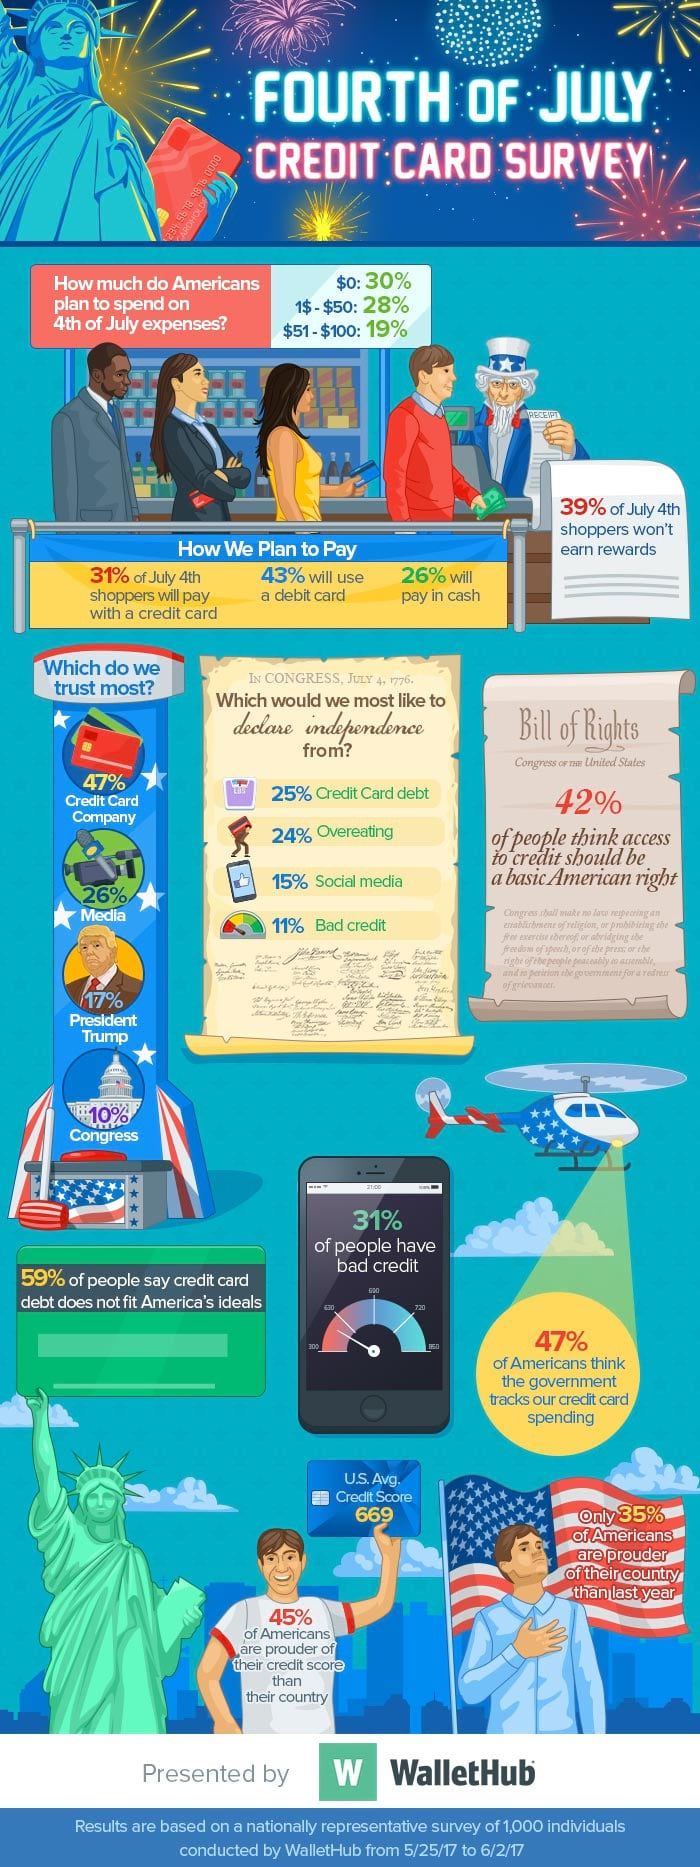 4th of July Credit Card Infographic